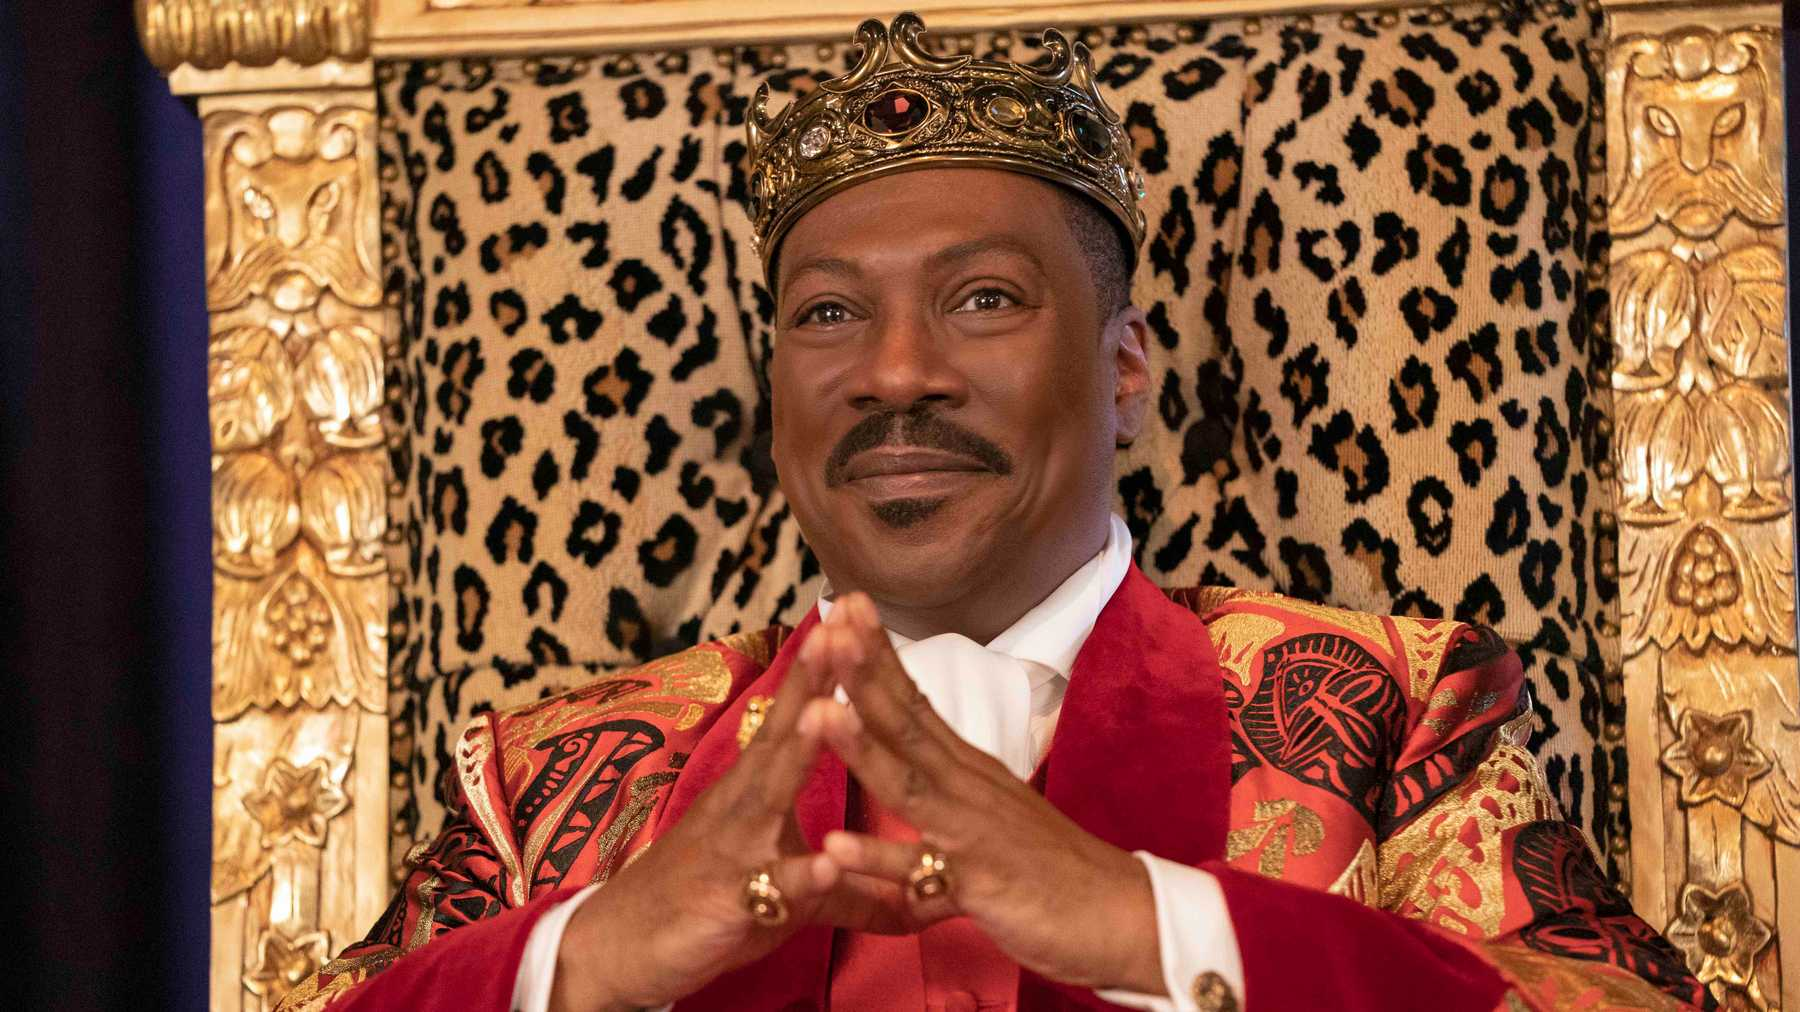 eddie murphy in coming to america sequel